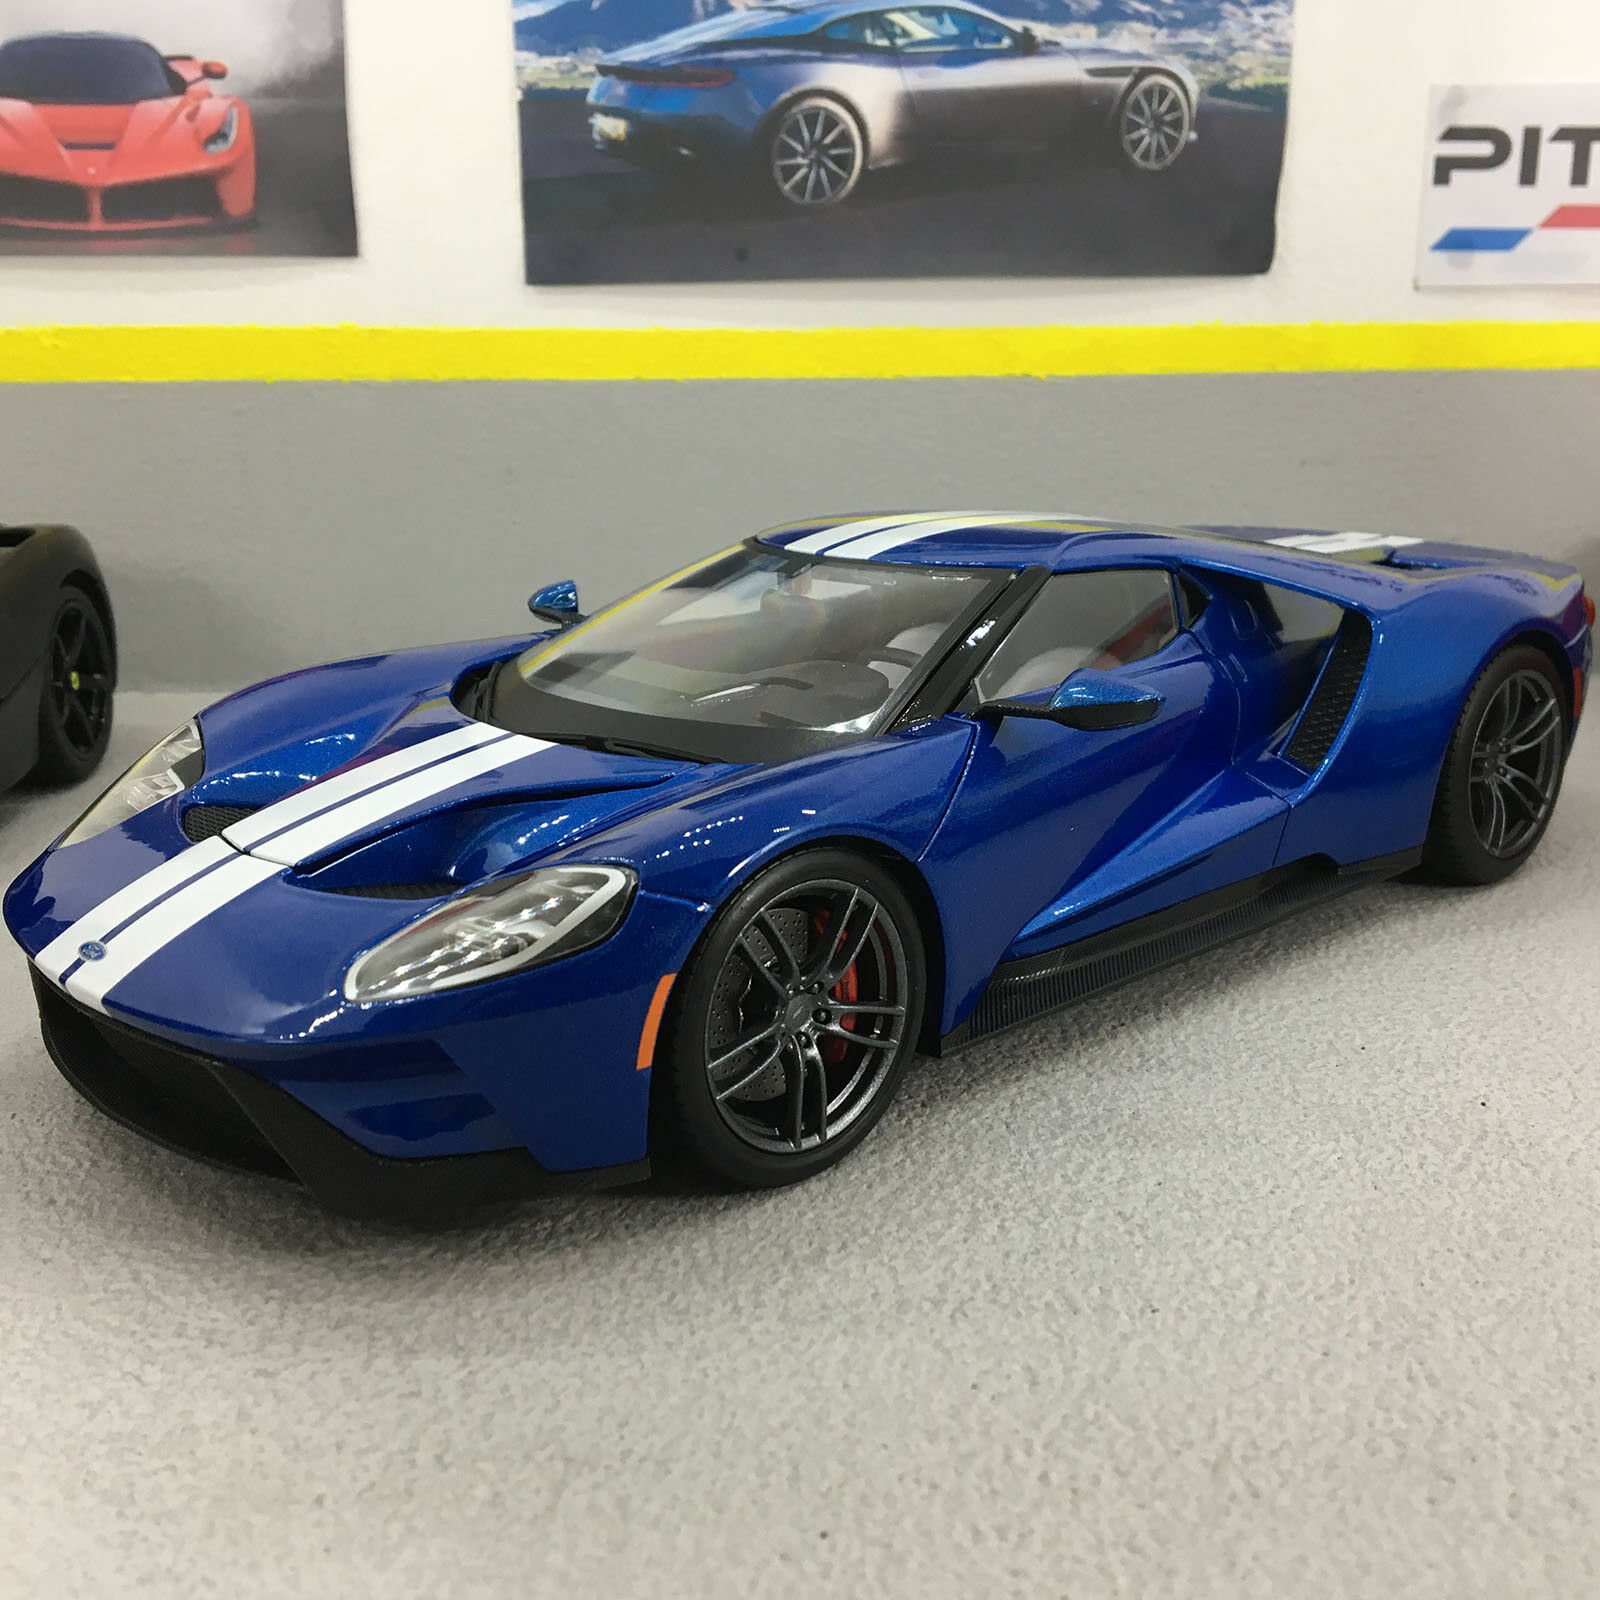 Ford GT 2017 V6 Twin Turbo 647BHP bluee 1 18 Scale Die-Cast Model Car